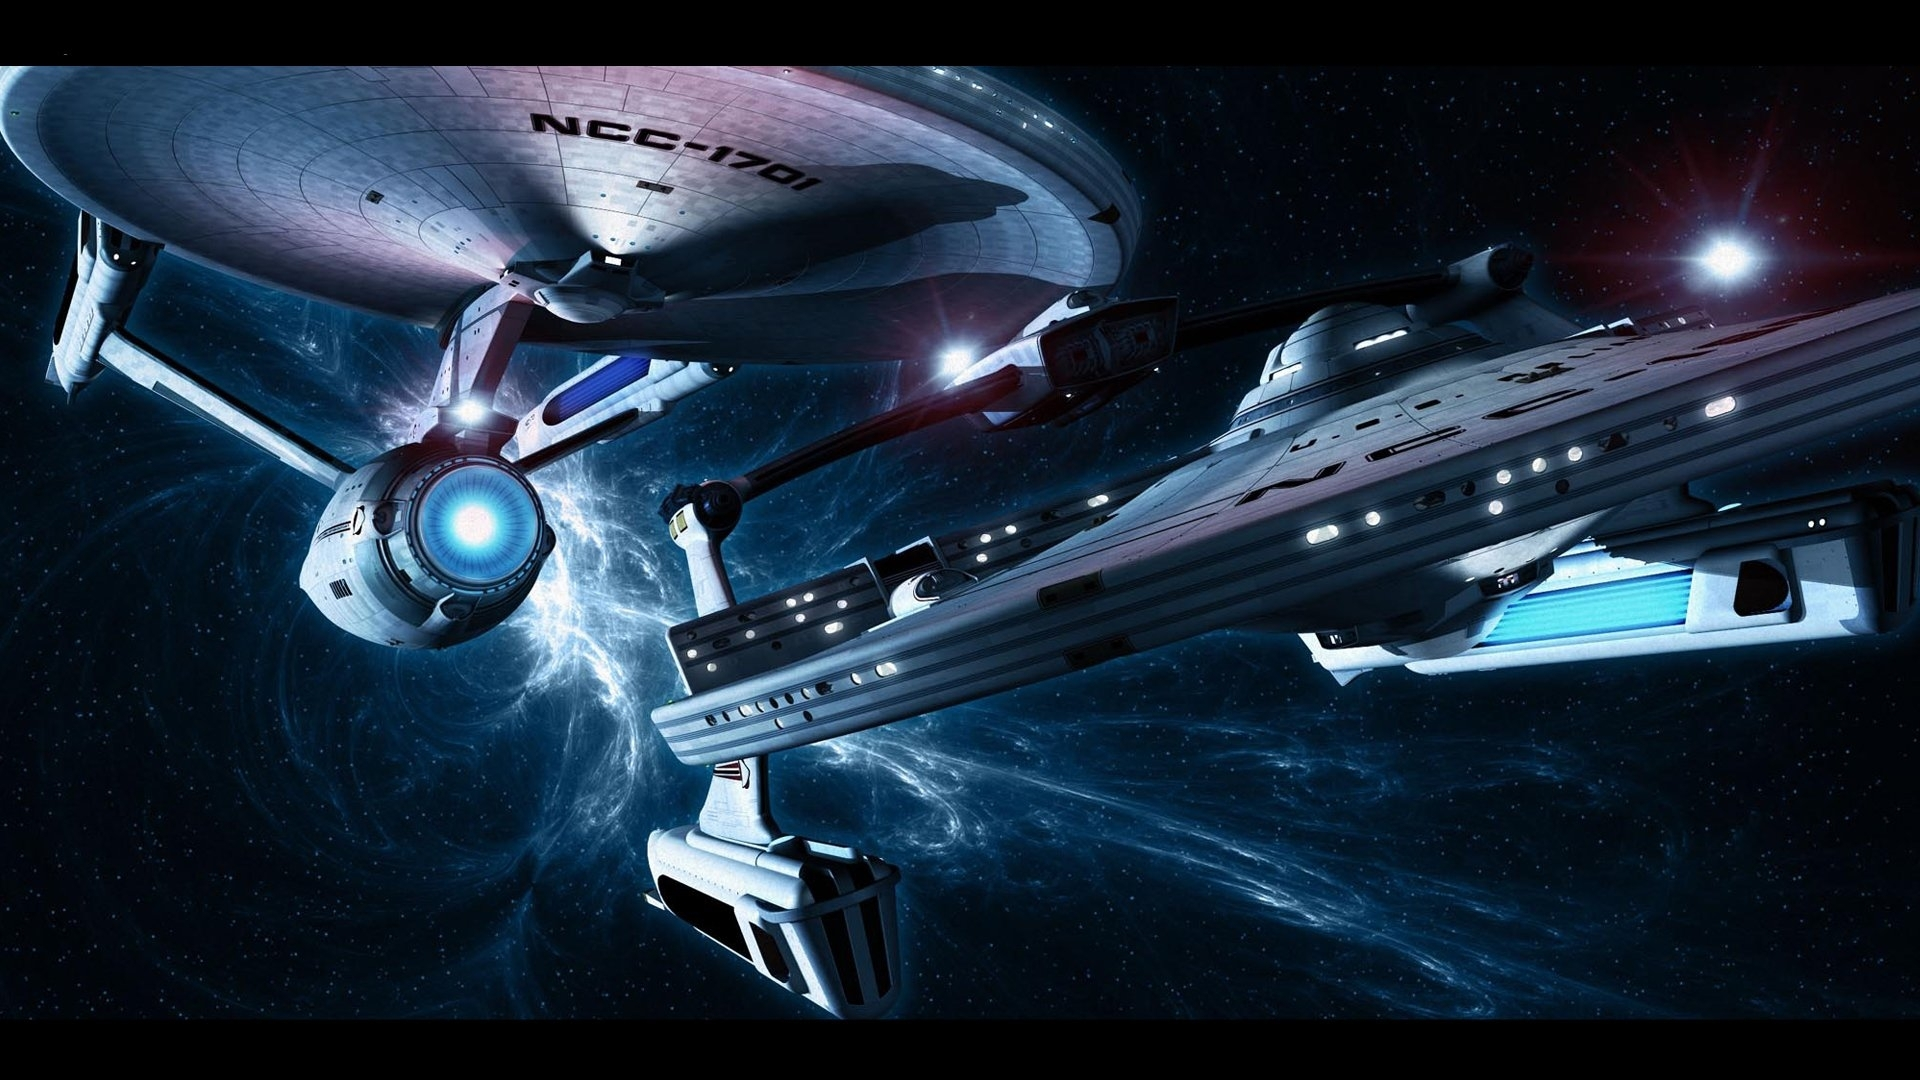 1313 star trek hd wallpapers | background images - wallpaper abyss